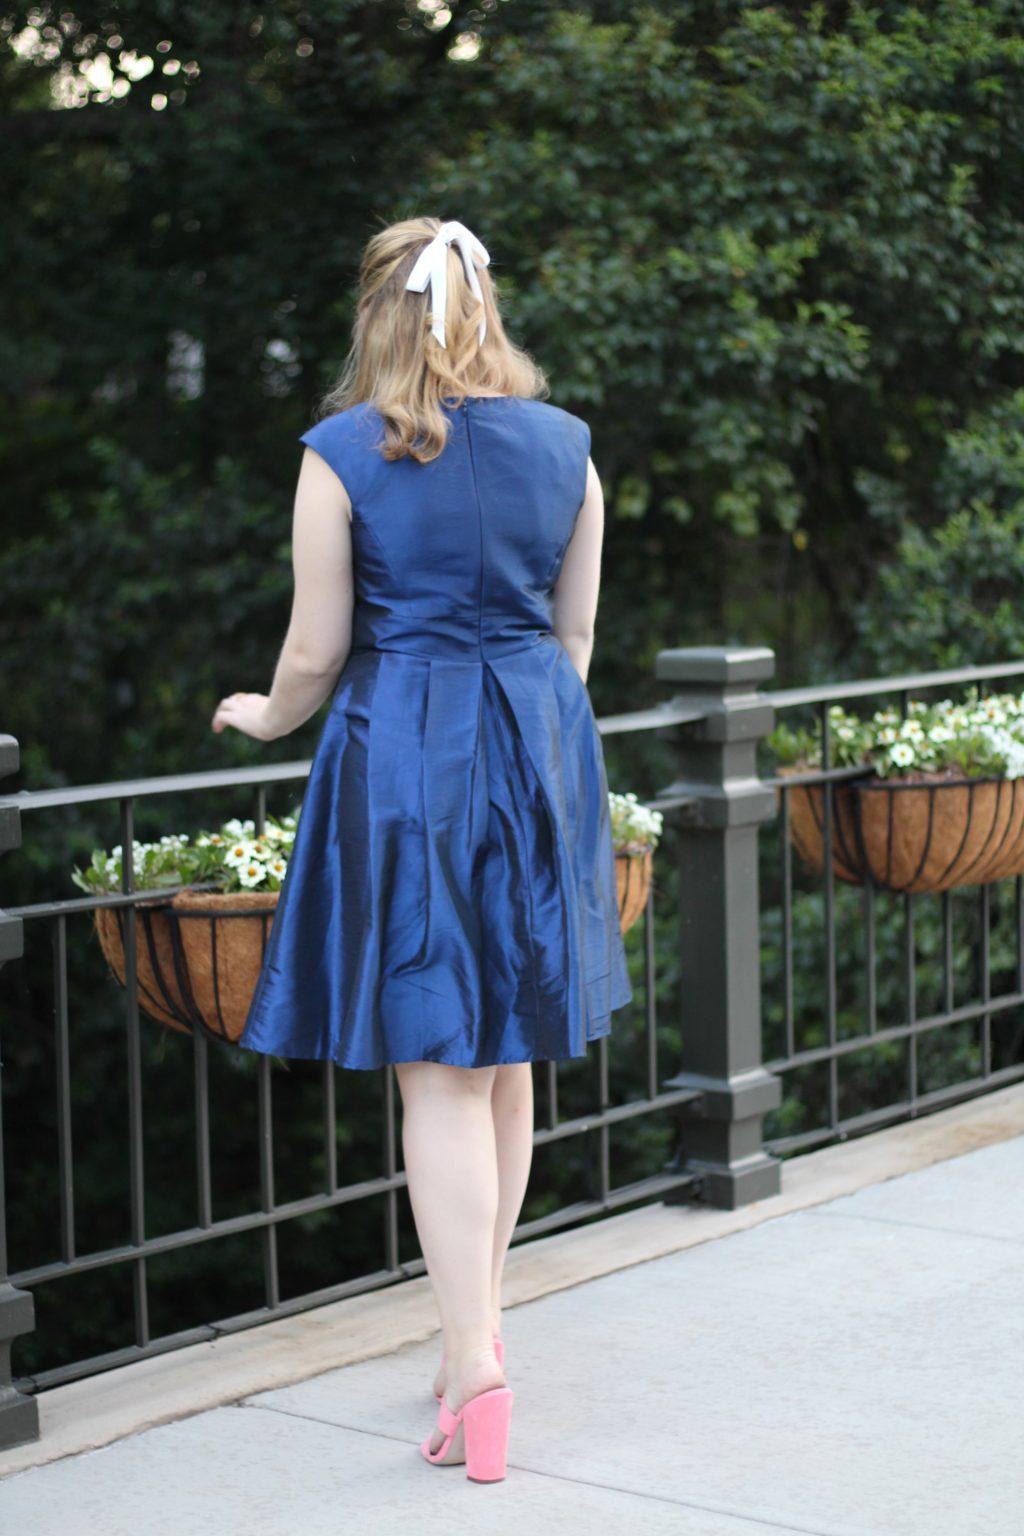 A Navy Dress Perfect to Wear to a Summer Wedding Navy Bow Dress, Chetta B blue dress Last Call Neiman Marcus dallas texas fashion blogger 2